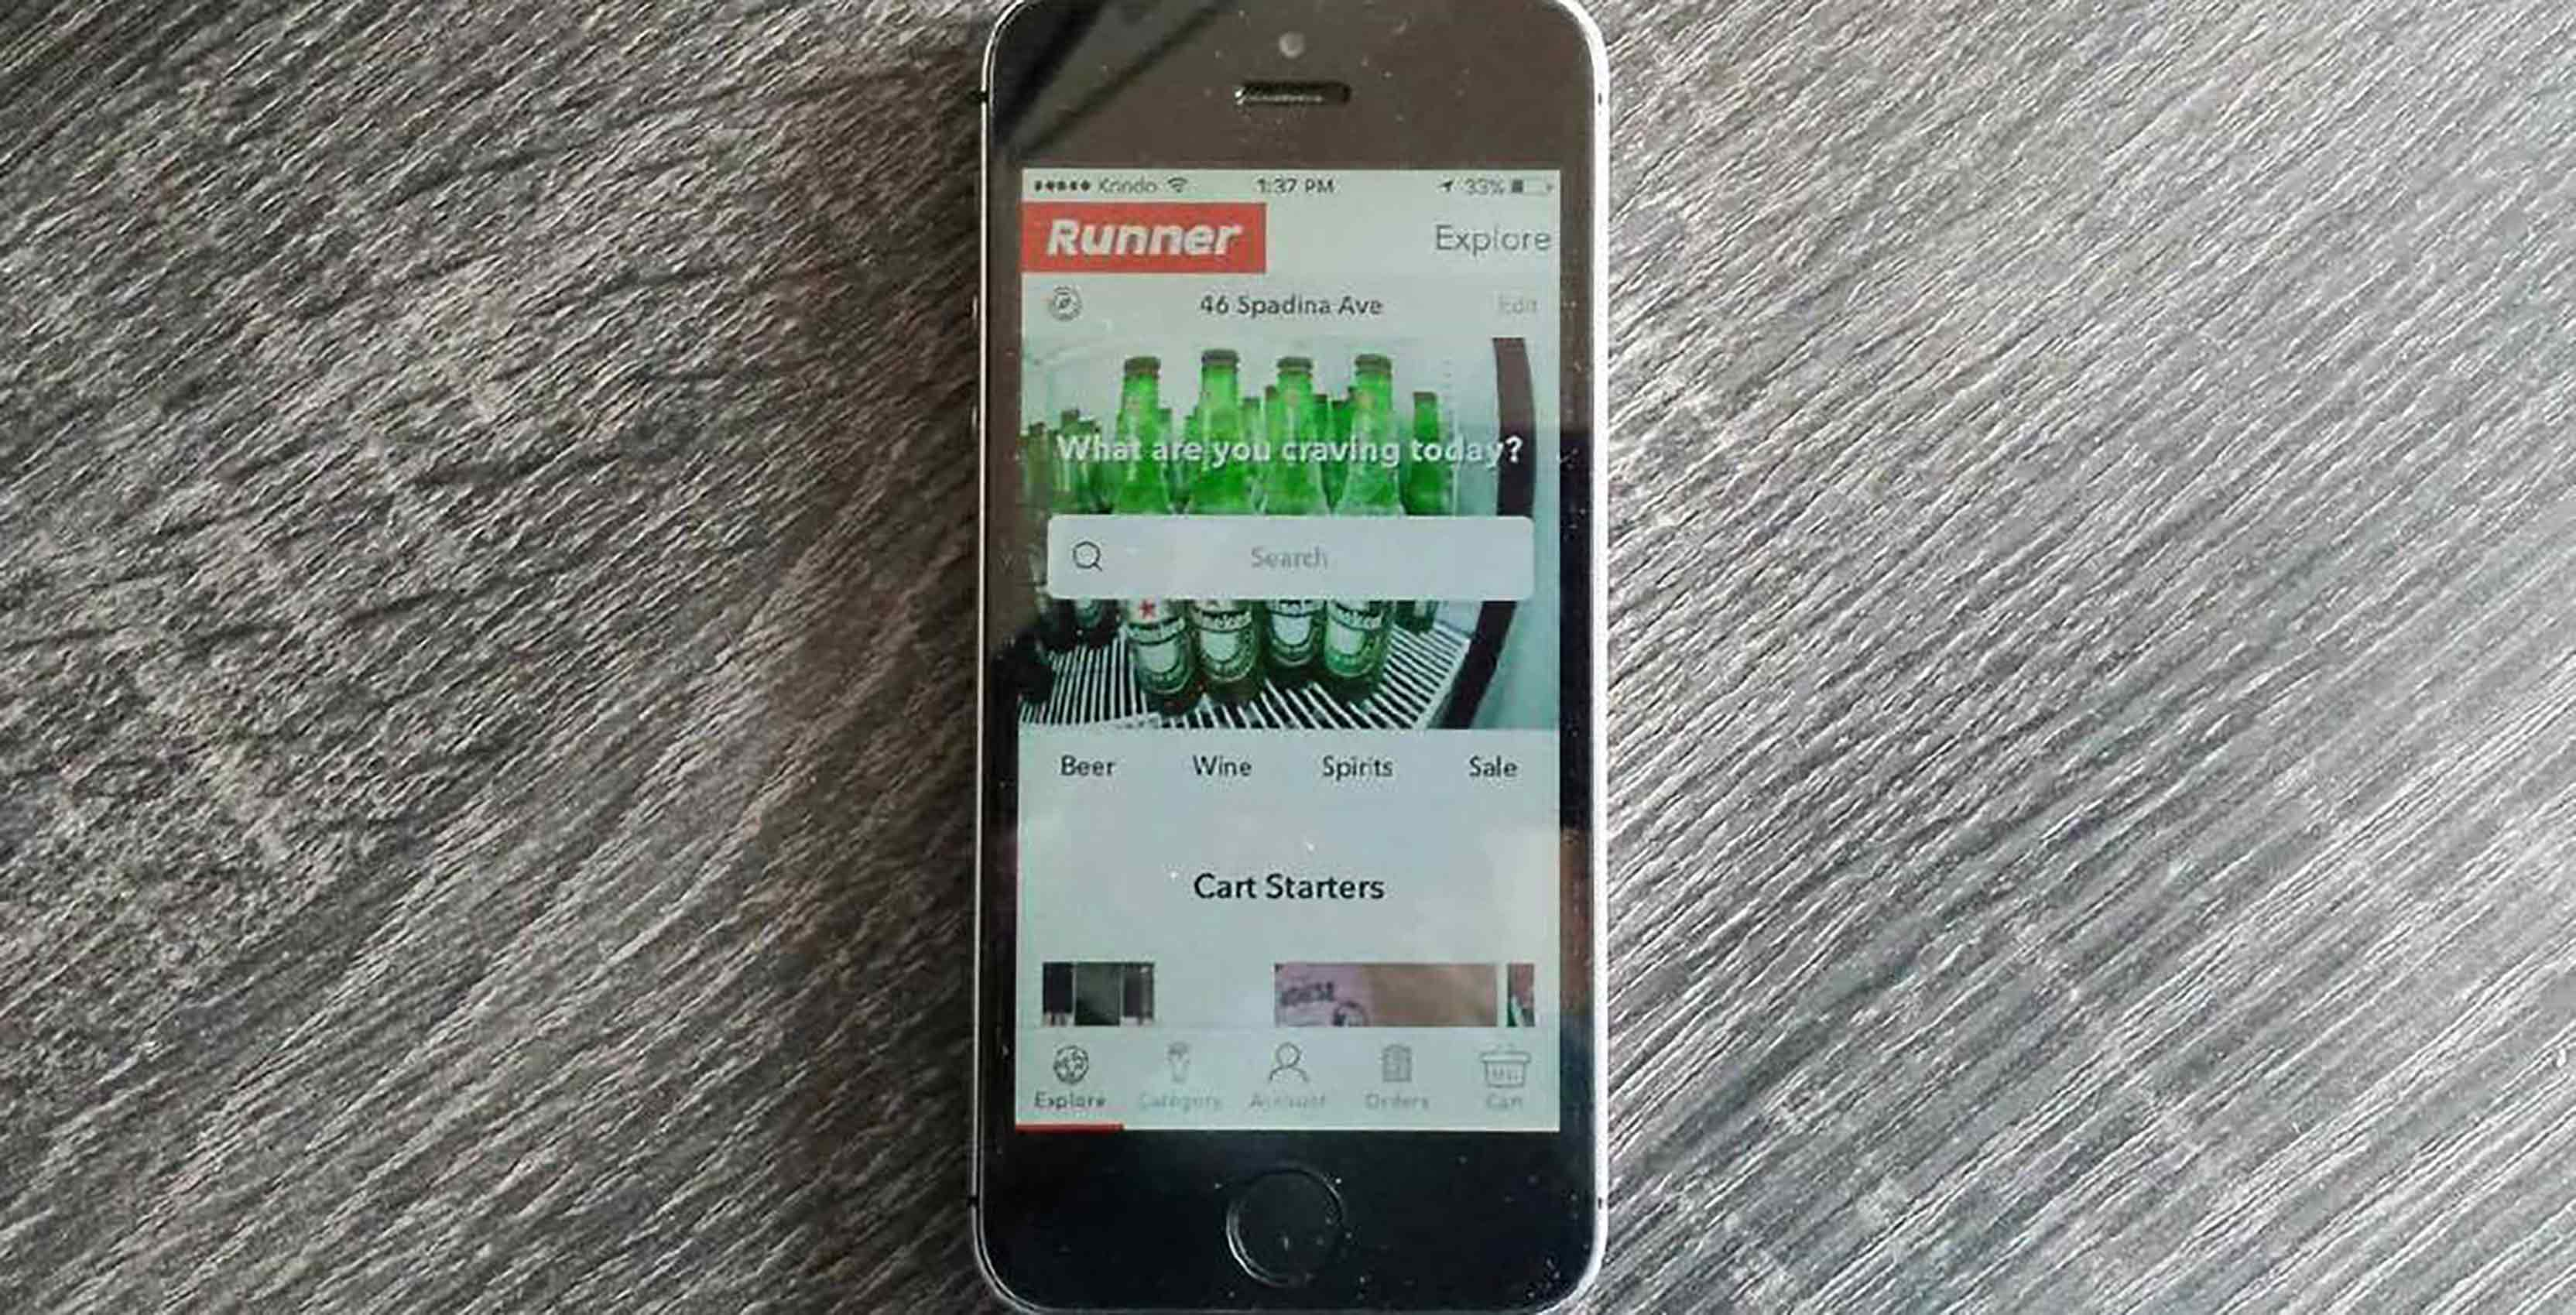 Runner app on iPhone SE